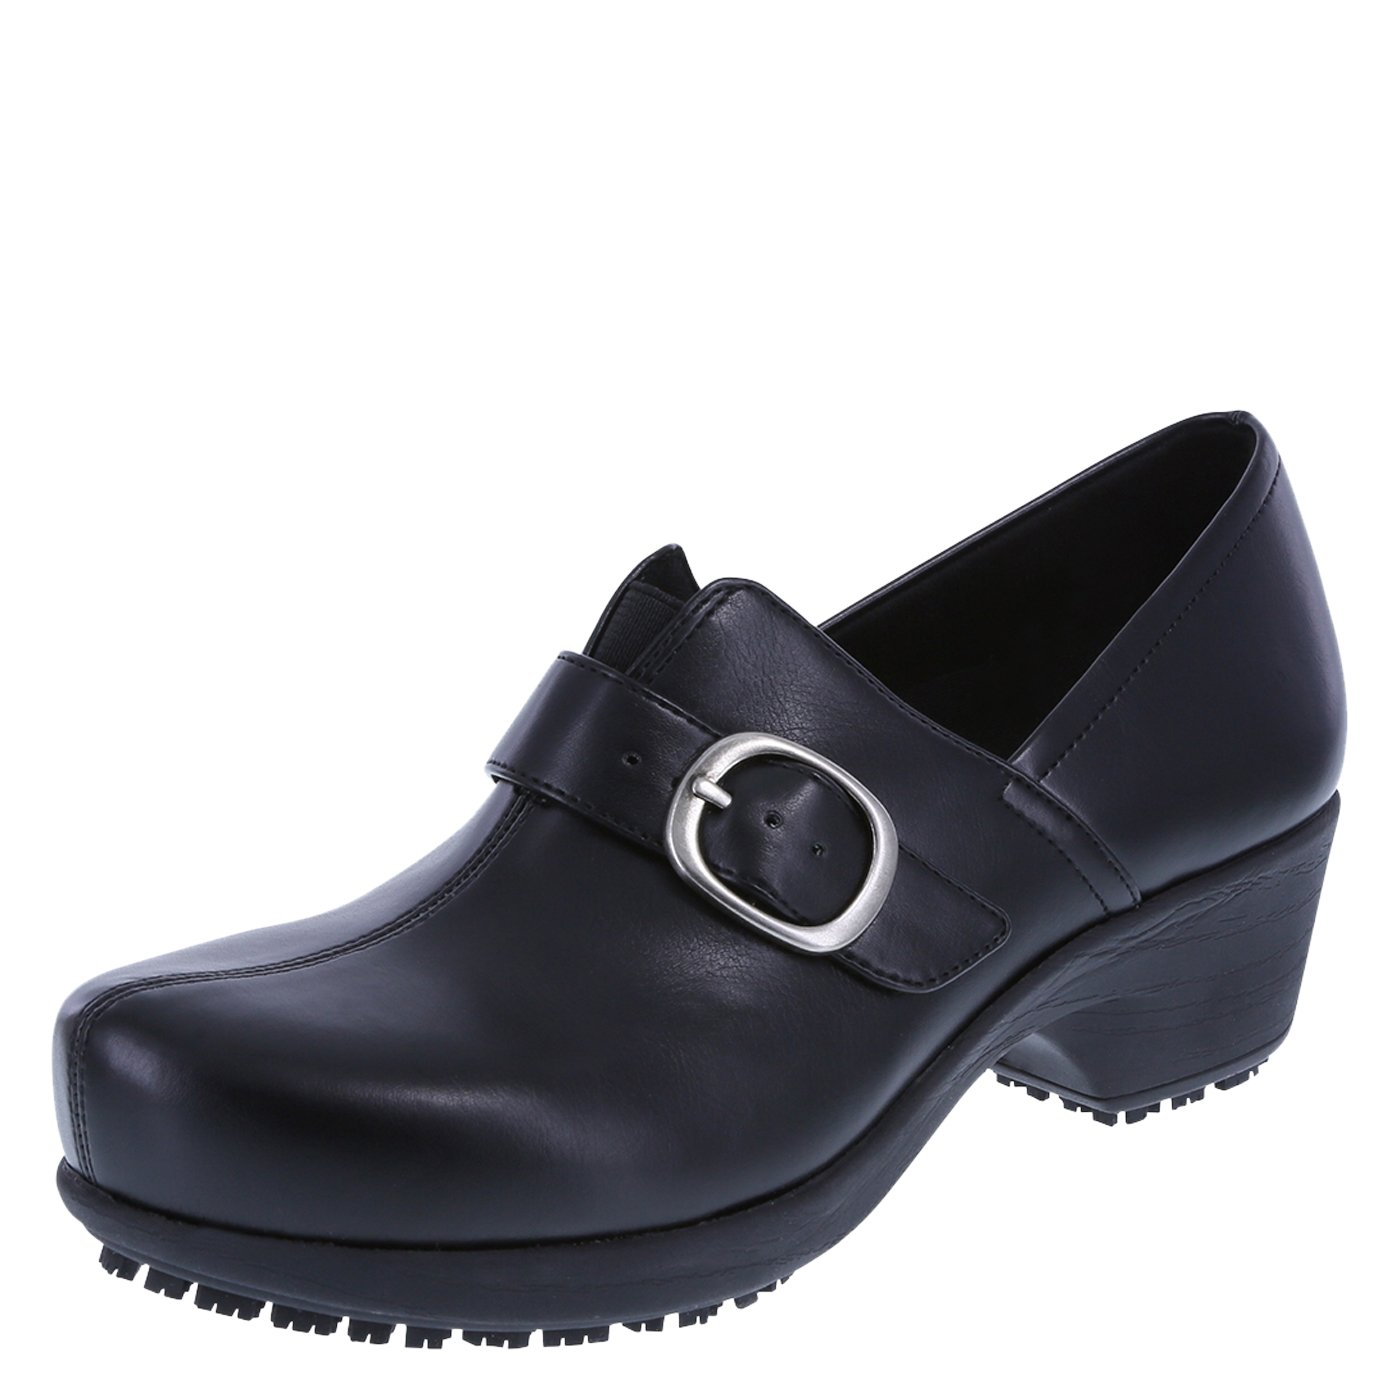 safeTstep Black Women's Slip Resistant Buckle Gretchen Clog 8 Wide